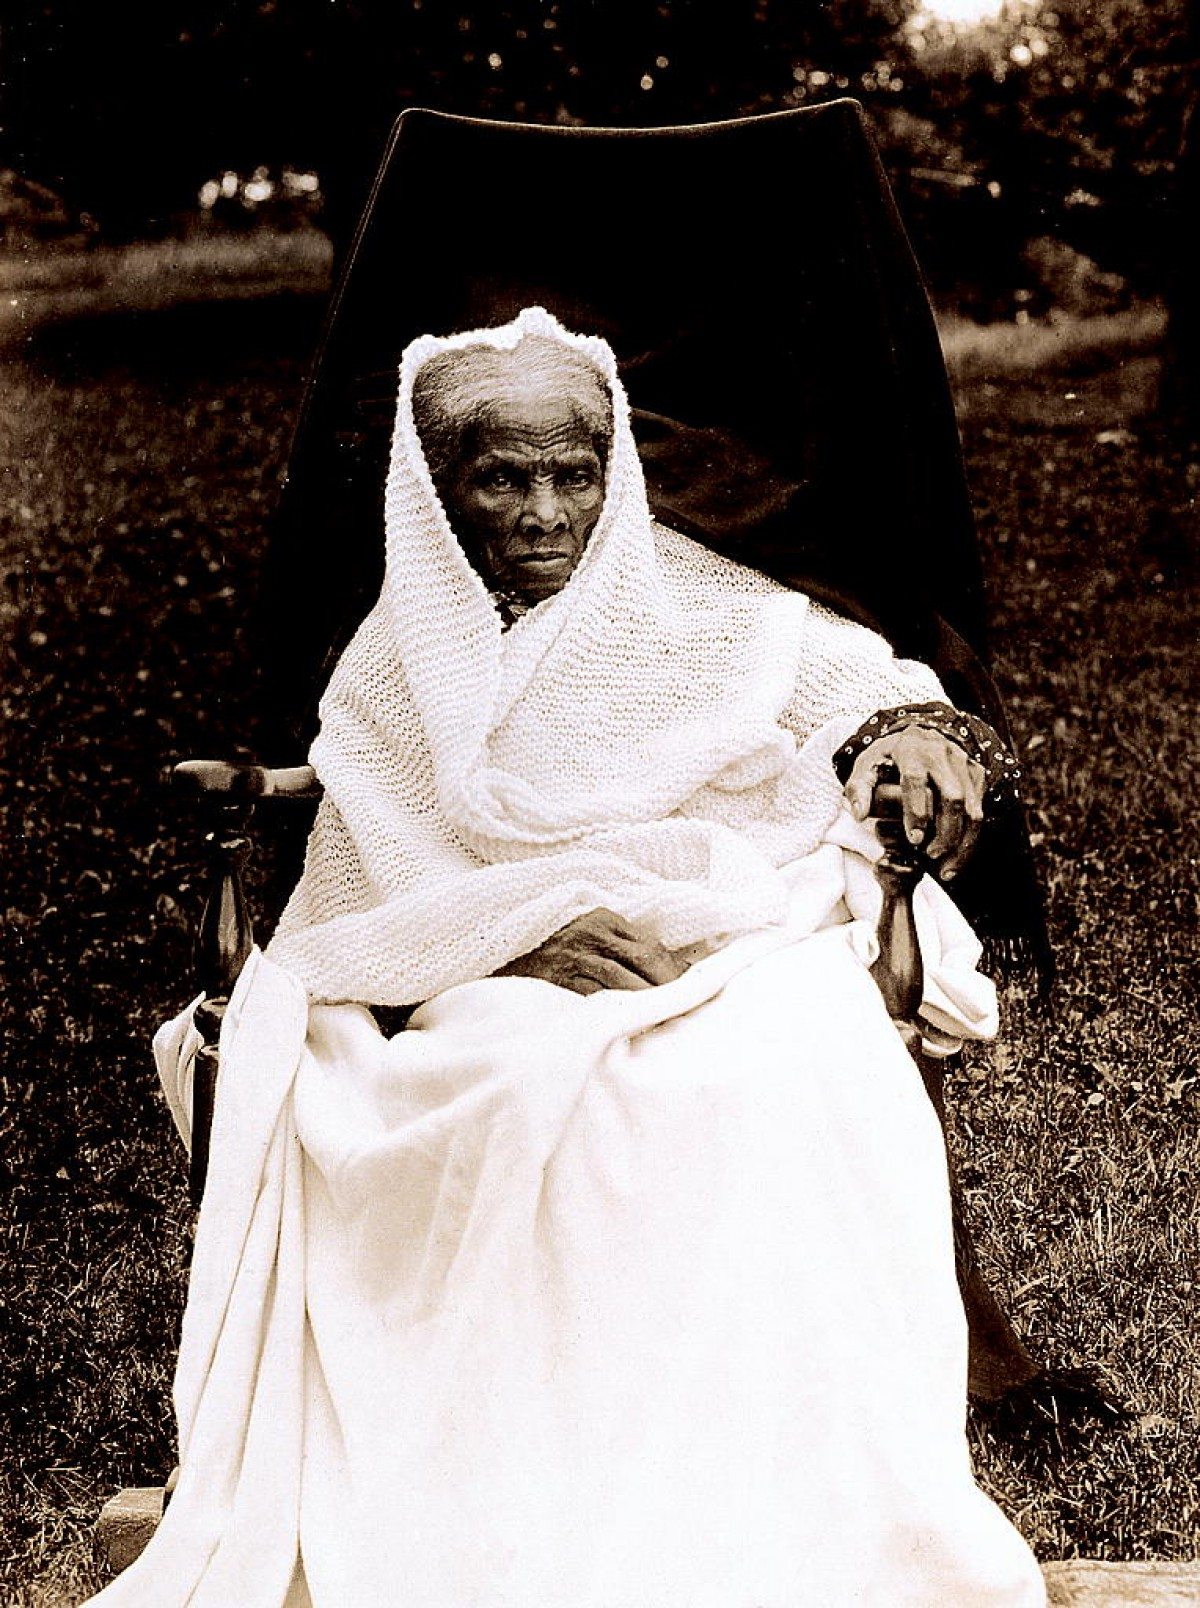 Harriet Tubman at 90